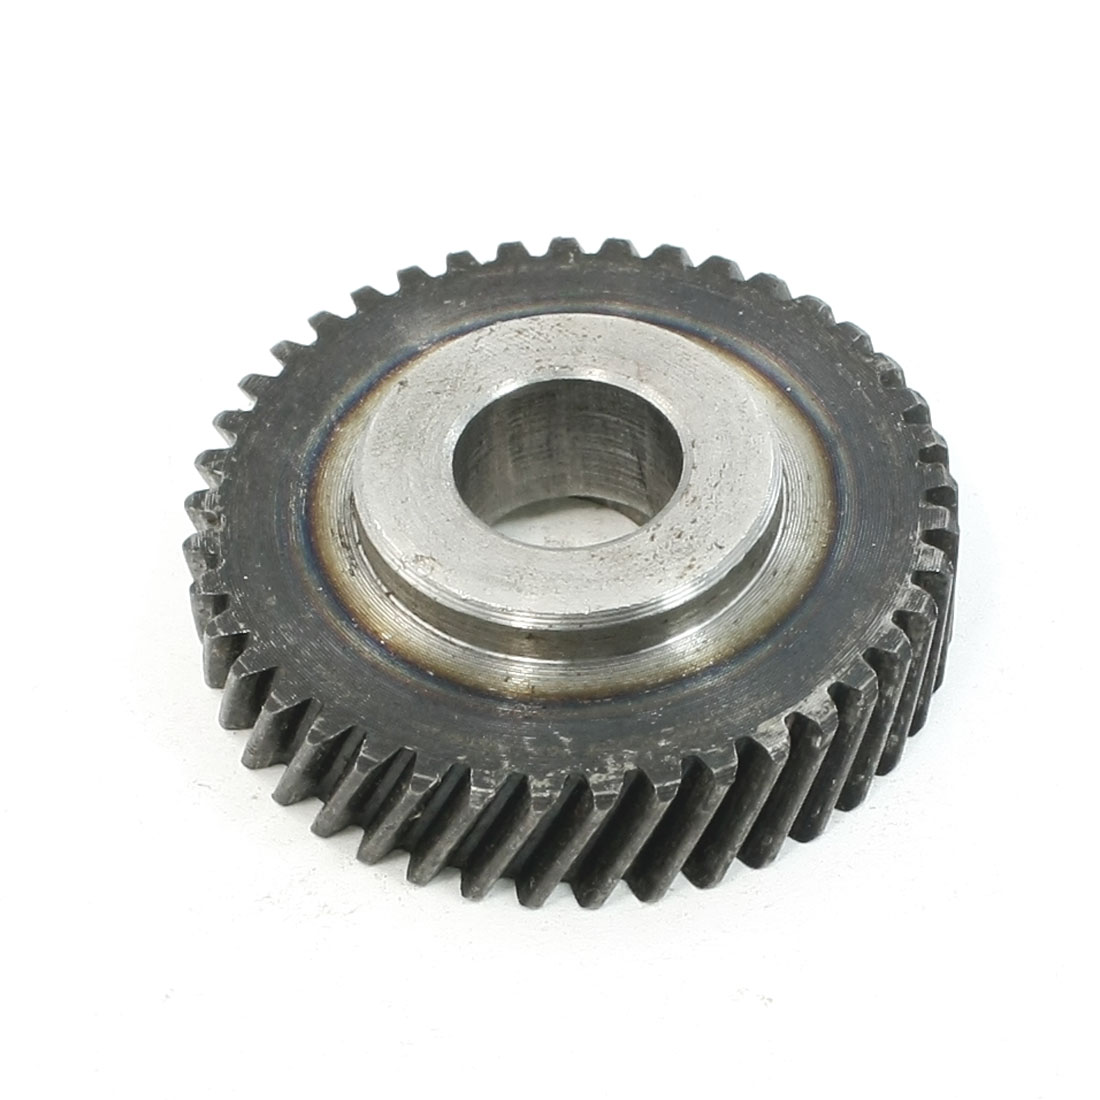 Helical Gear Wheel Replacement Part for Makita 2414B Cut-off Machine